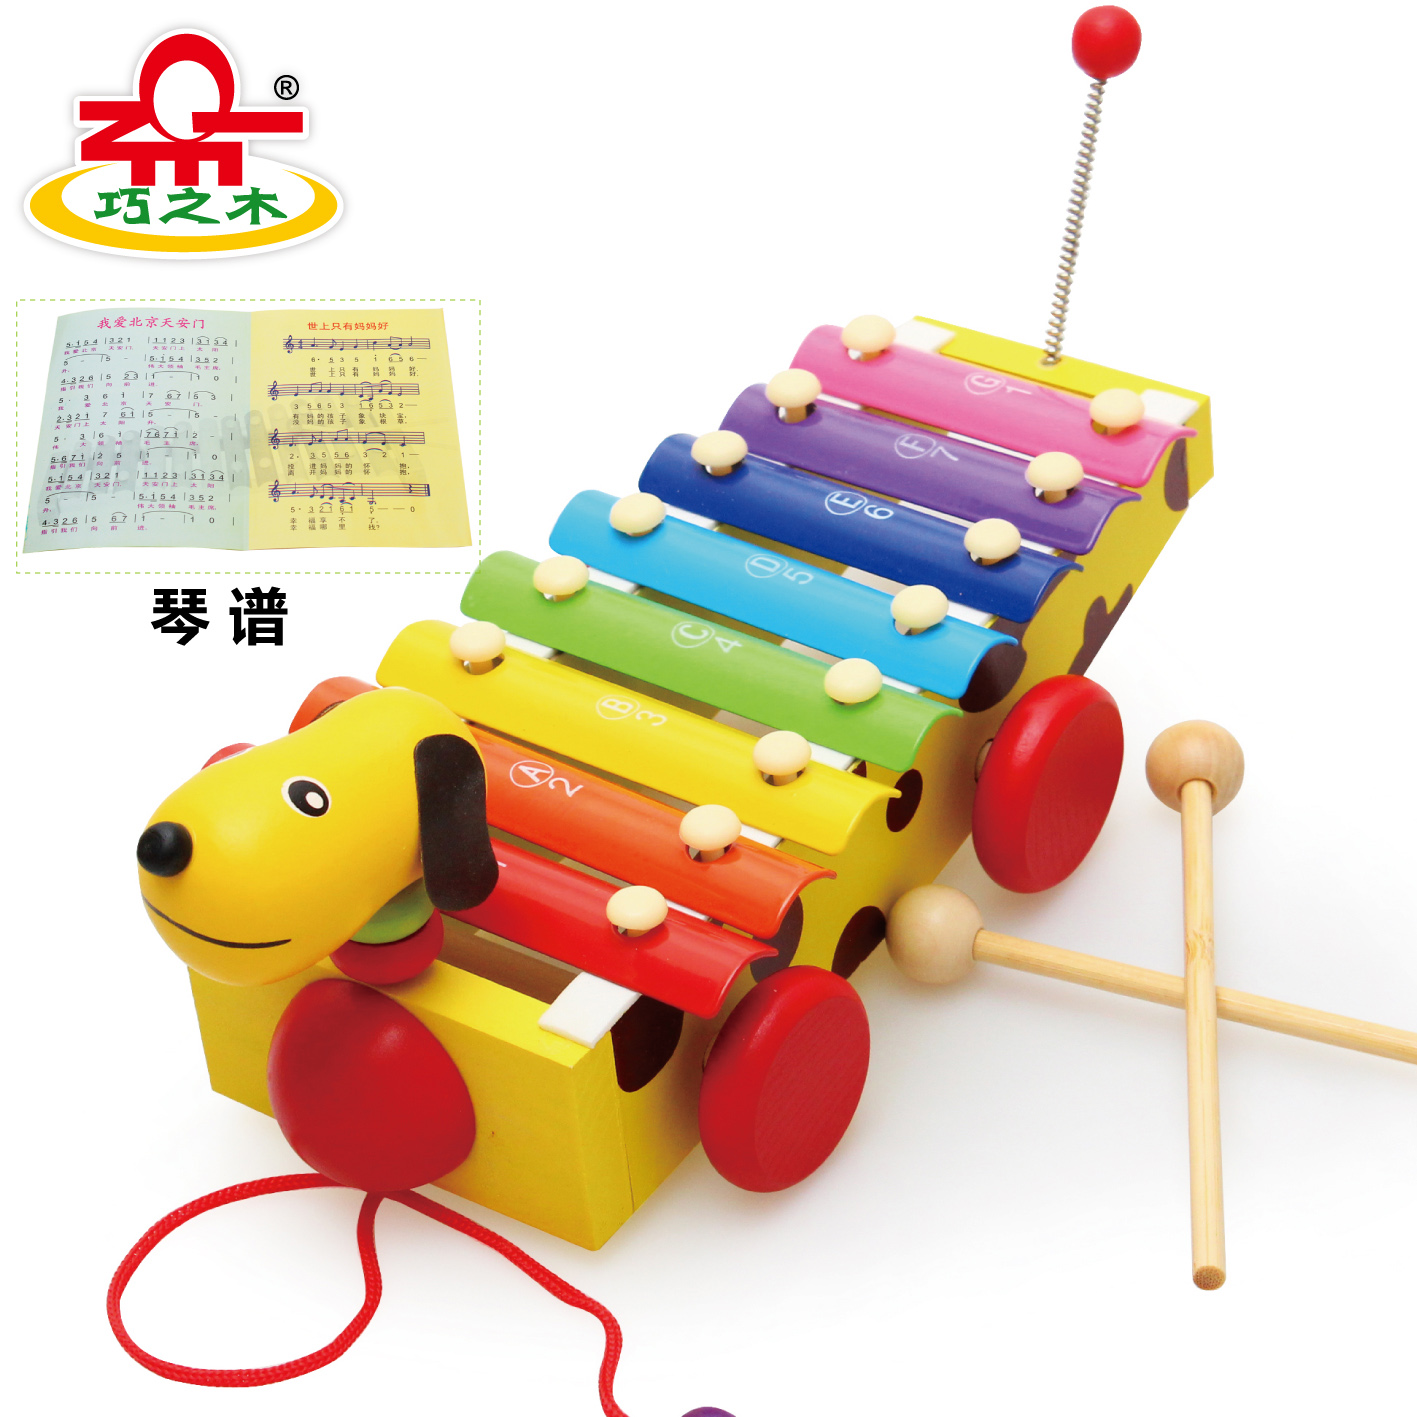 Toys For 0 2 Years : Usd child early learning piano to years old